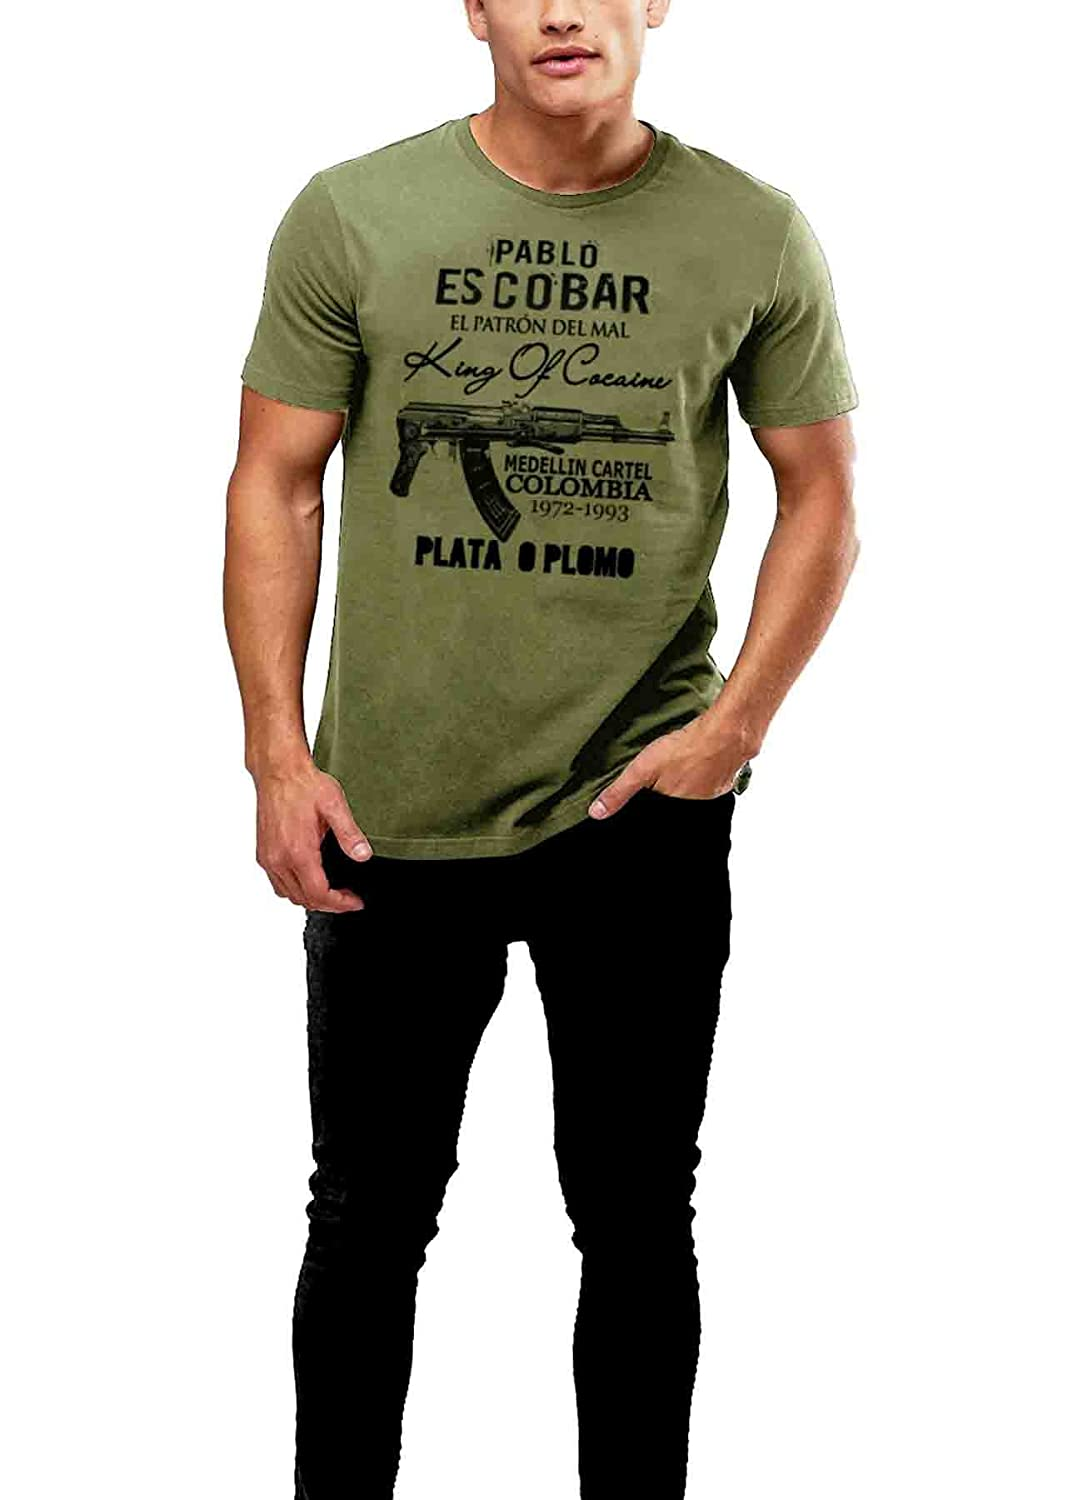 Rancid Nation Pablo Escobar T-Shirt Medellin Cartel Plato O ...